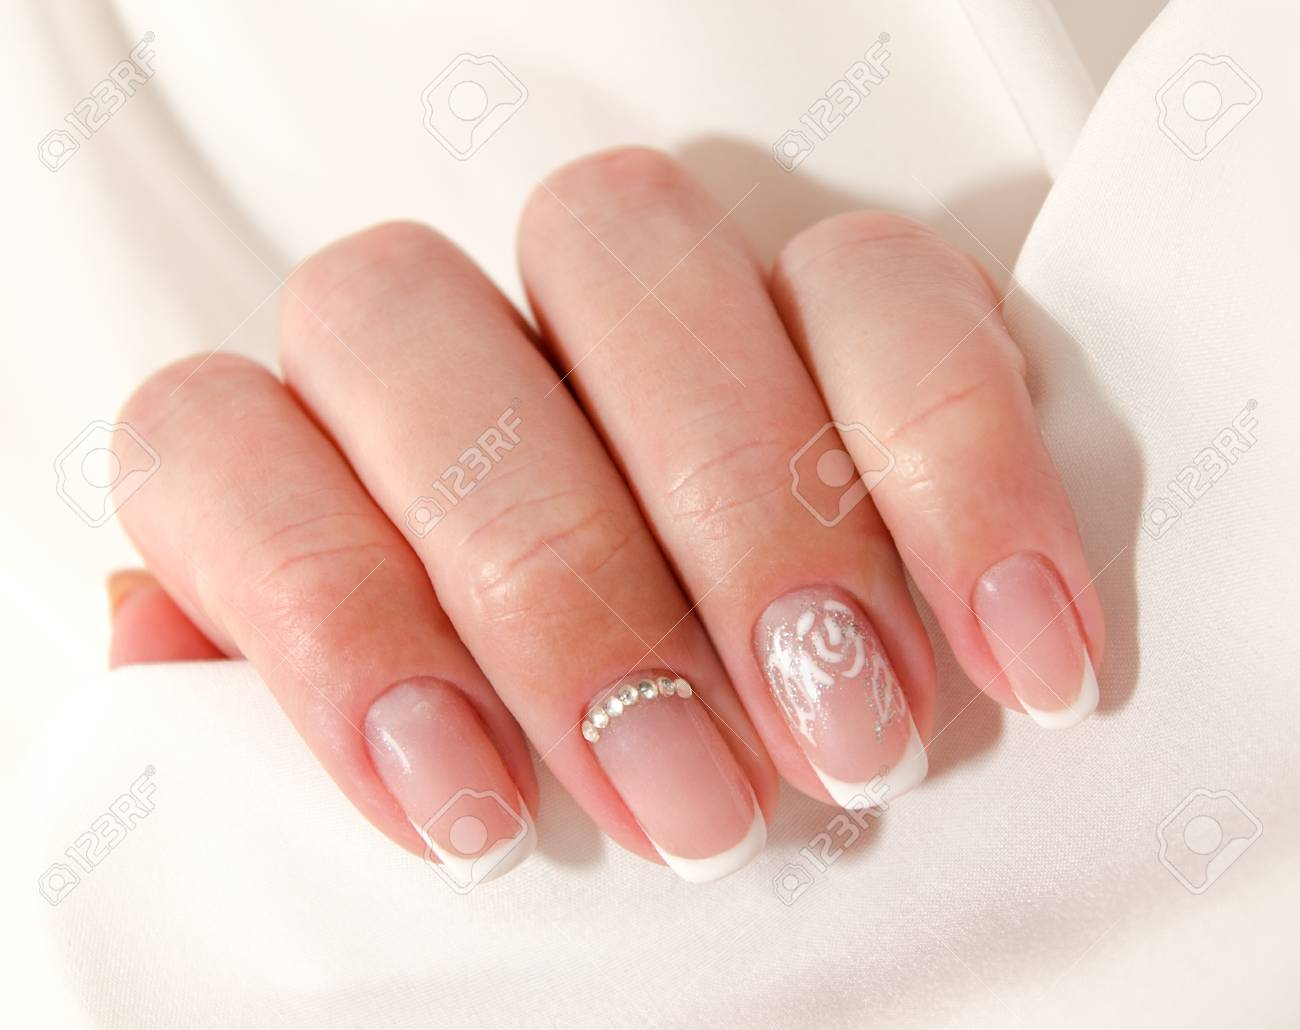 Woman\'s Nails With Beautiful French Manicure Fashion Design With ...